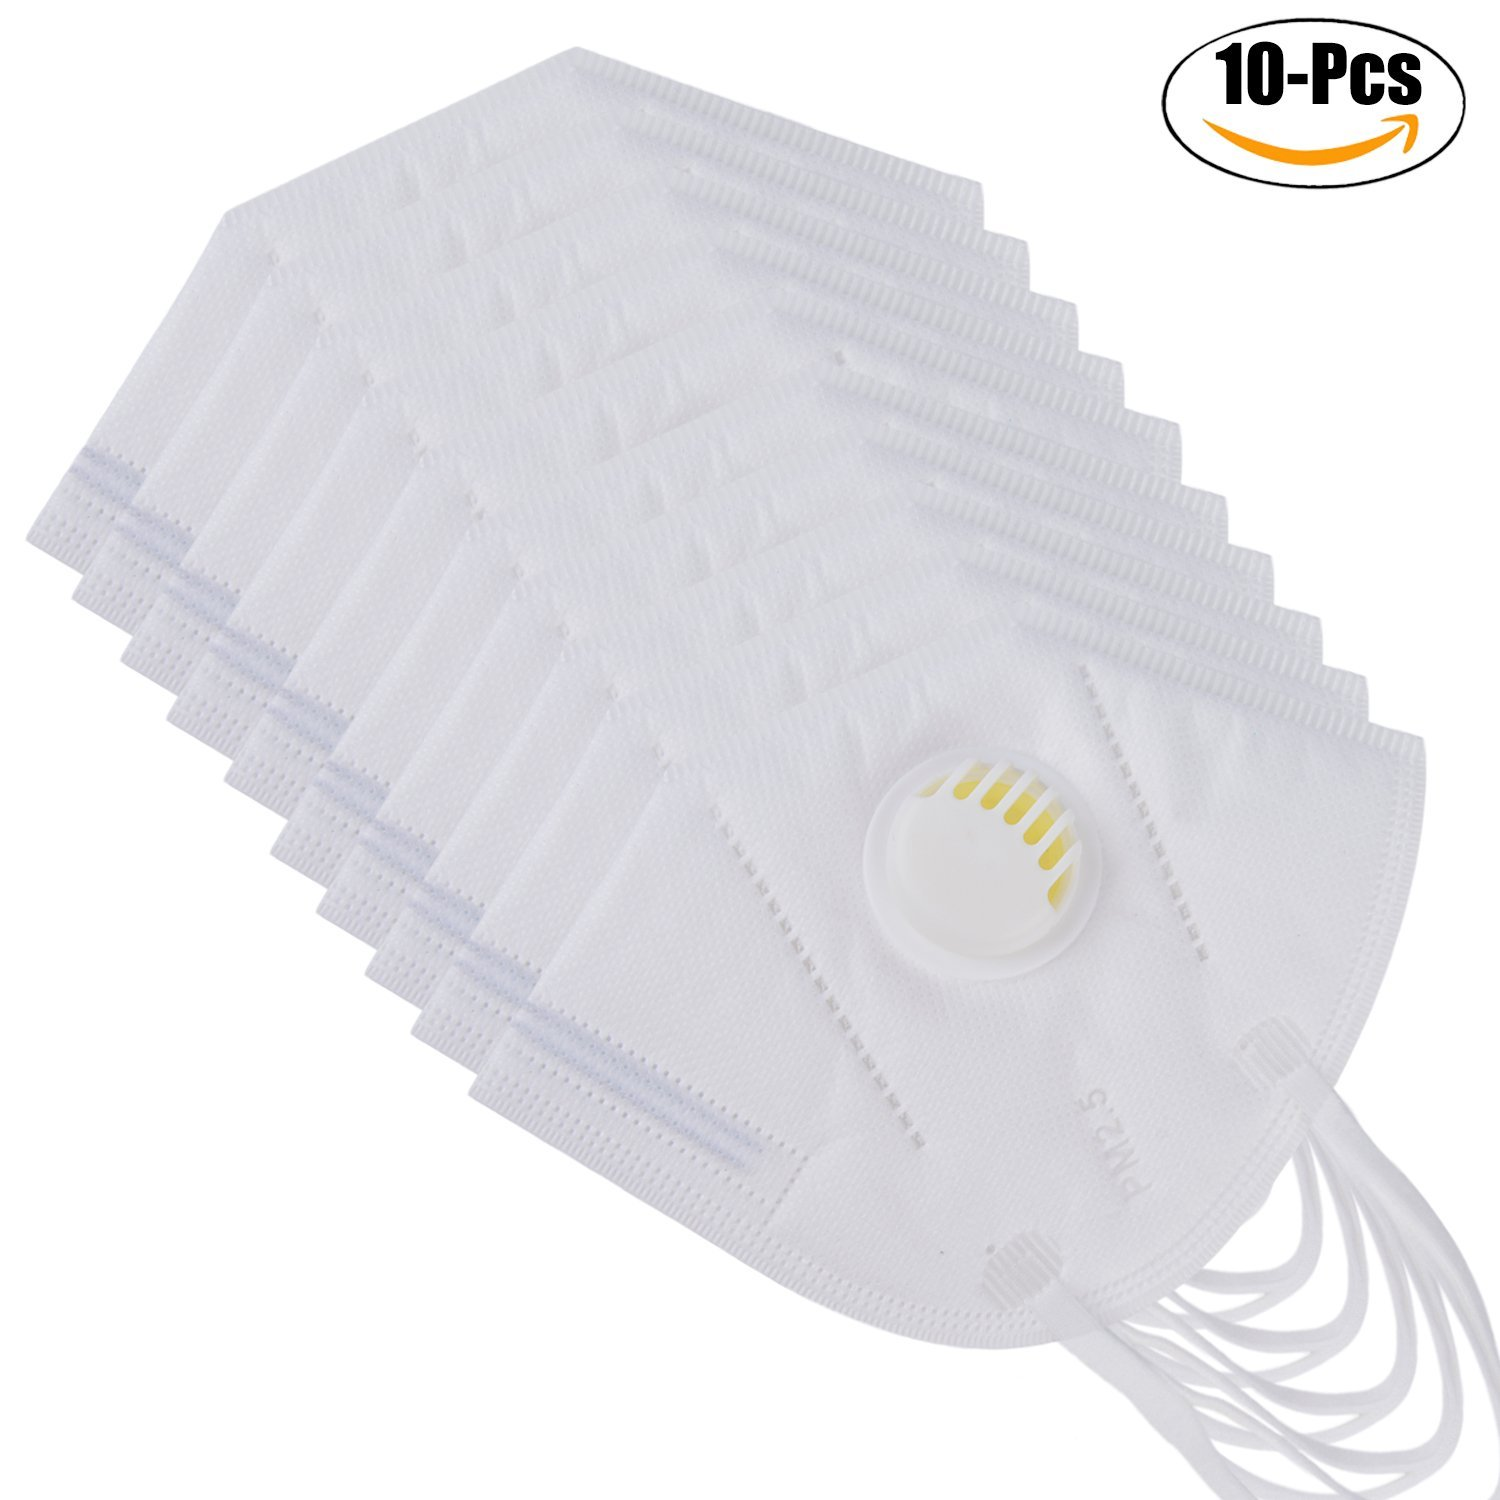 10pcs Disposable 4layers Non-woven Mouth Mask Activated Carbon Filter Pm2.5 Dustproof Anti Pollution Surgical Earloop Respirator Personal Health Care Masks